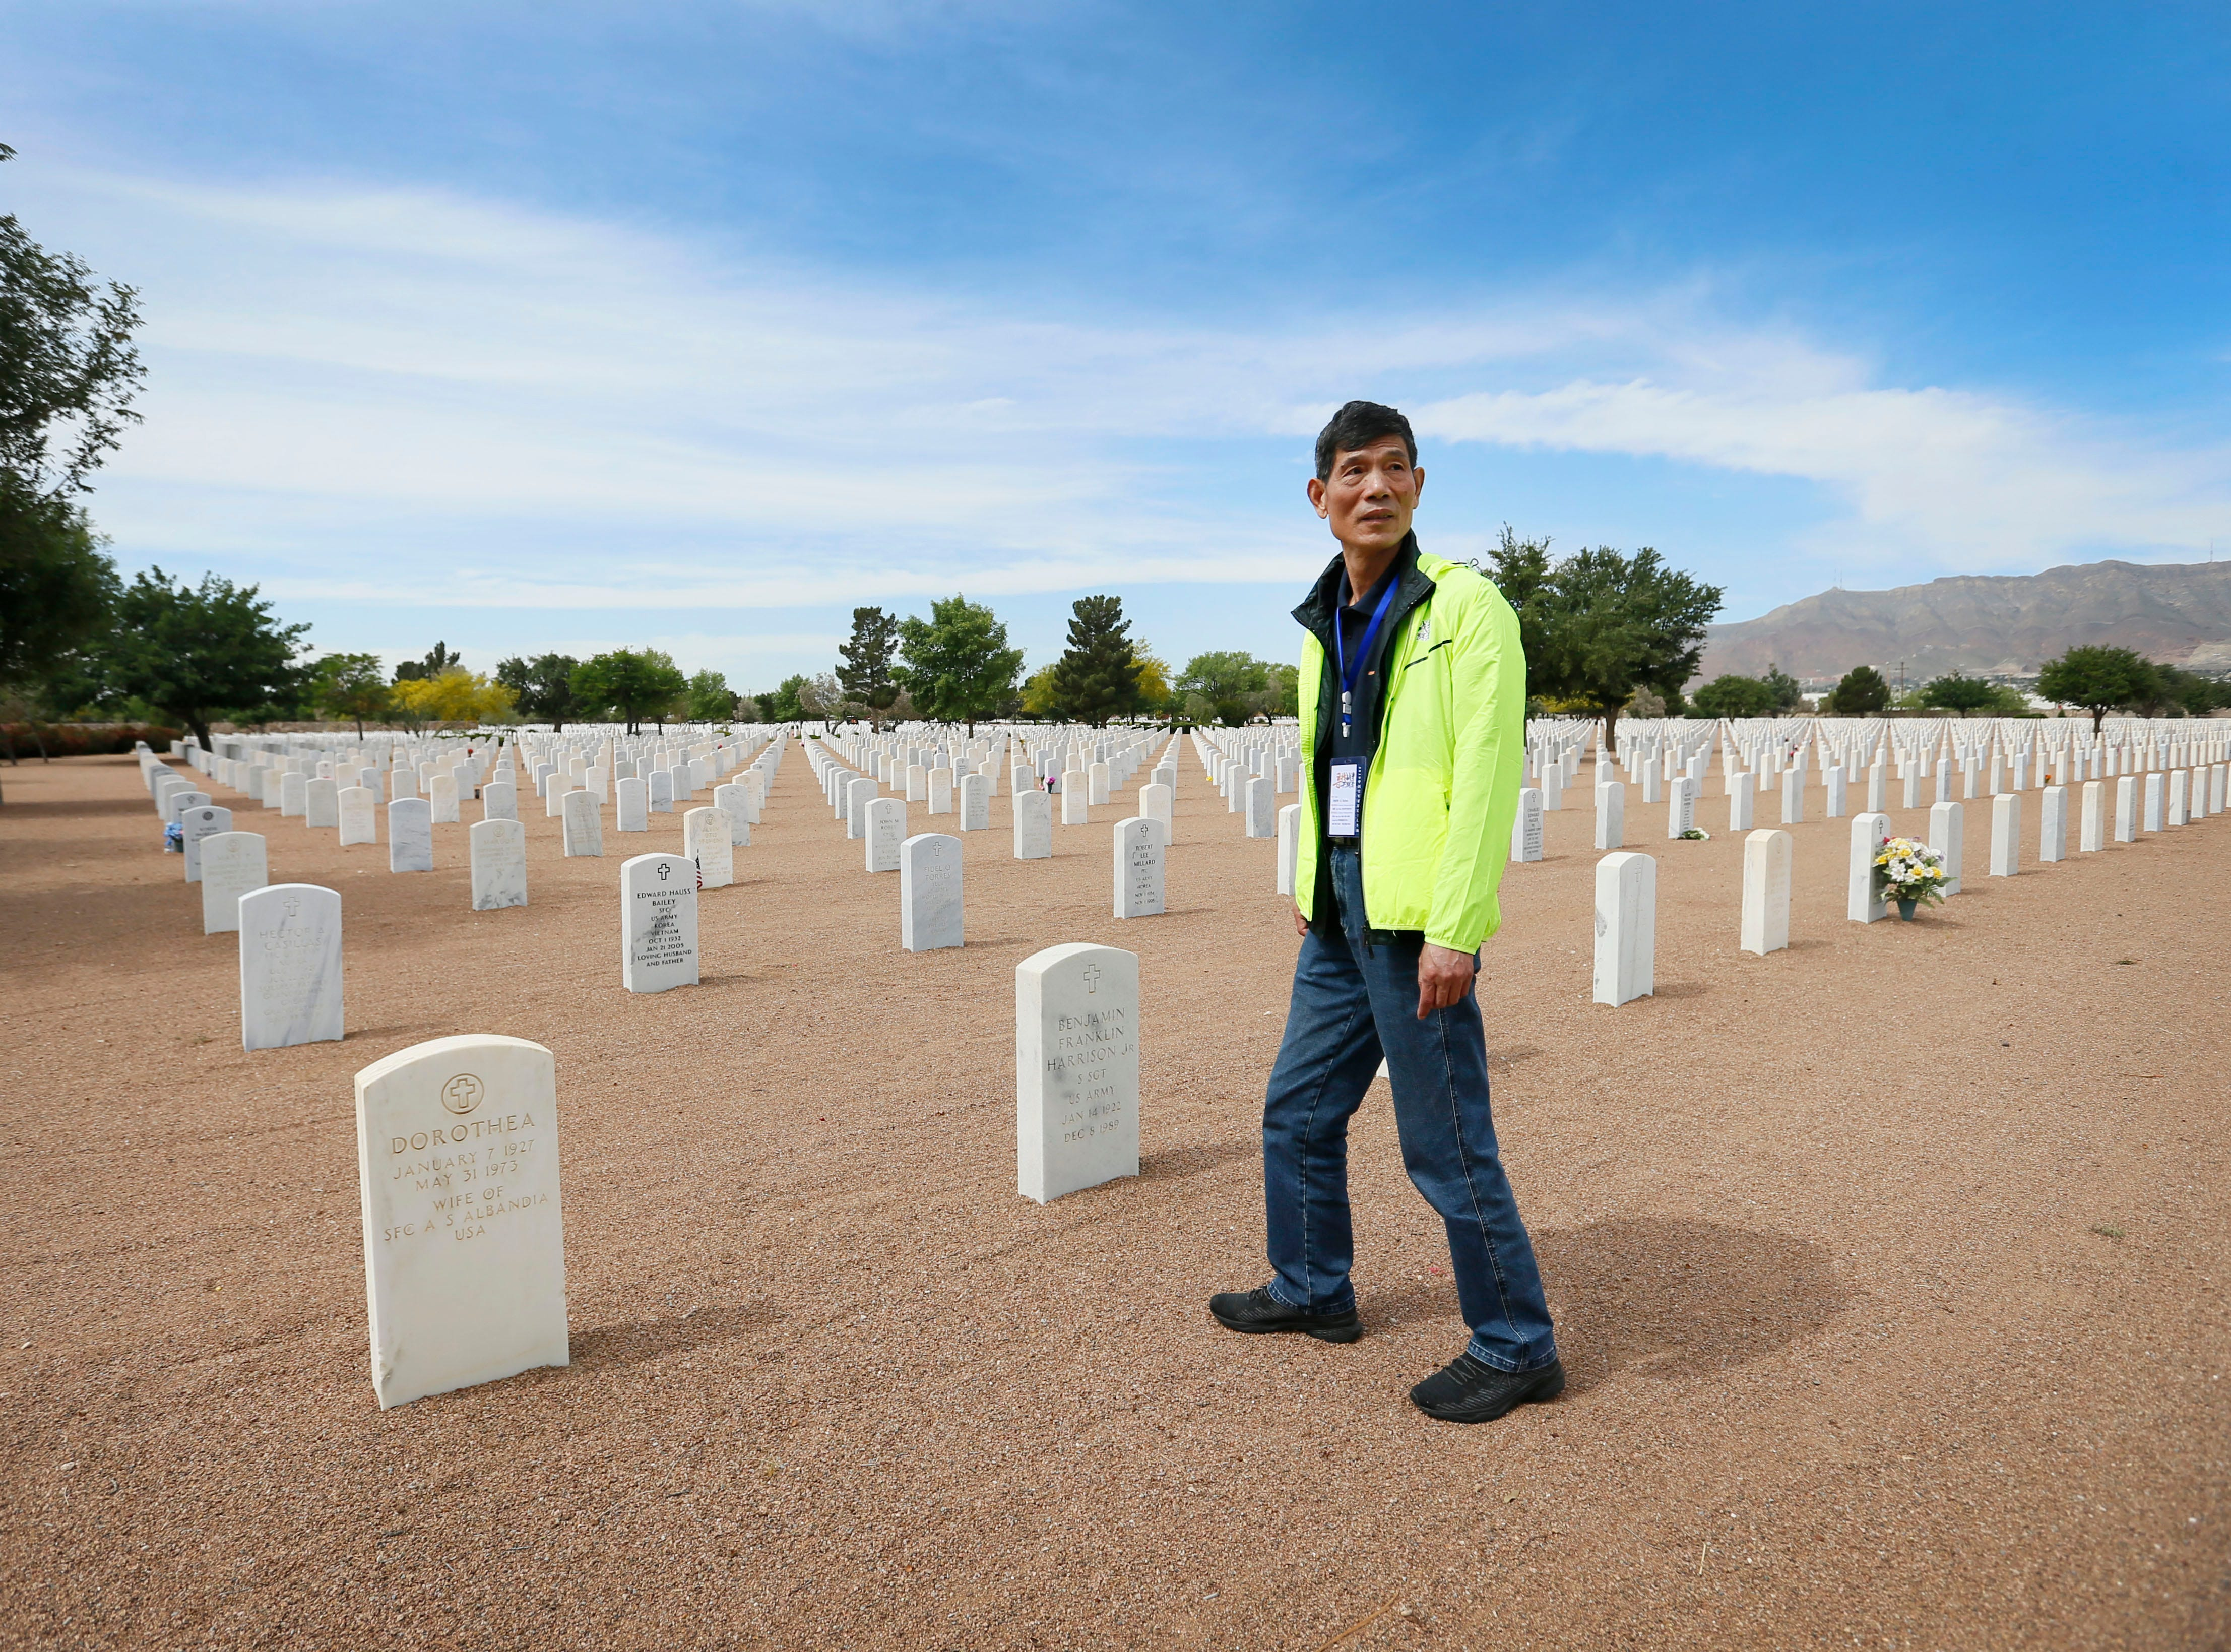 Li Shihua walks towards the area where his great uncle Lee Yei-Chang was buried Monday, May 13, at Fort Bliss National Cemetery. The Hunan LongYue Peace Charity Development Center brought family members to El Paso to pay a special remembrance to their relatives who are amongst the 52 Chinese pilots who died in the U.S. during flight training in World War II.